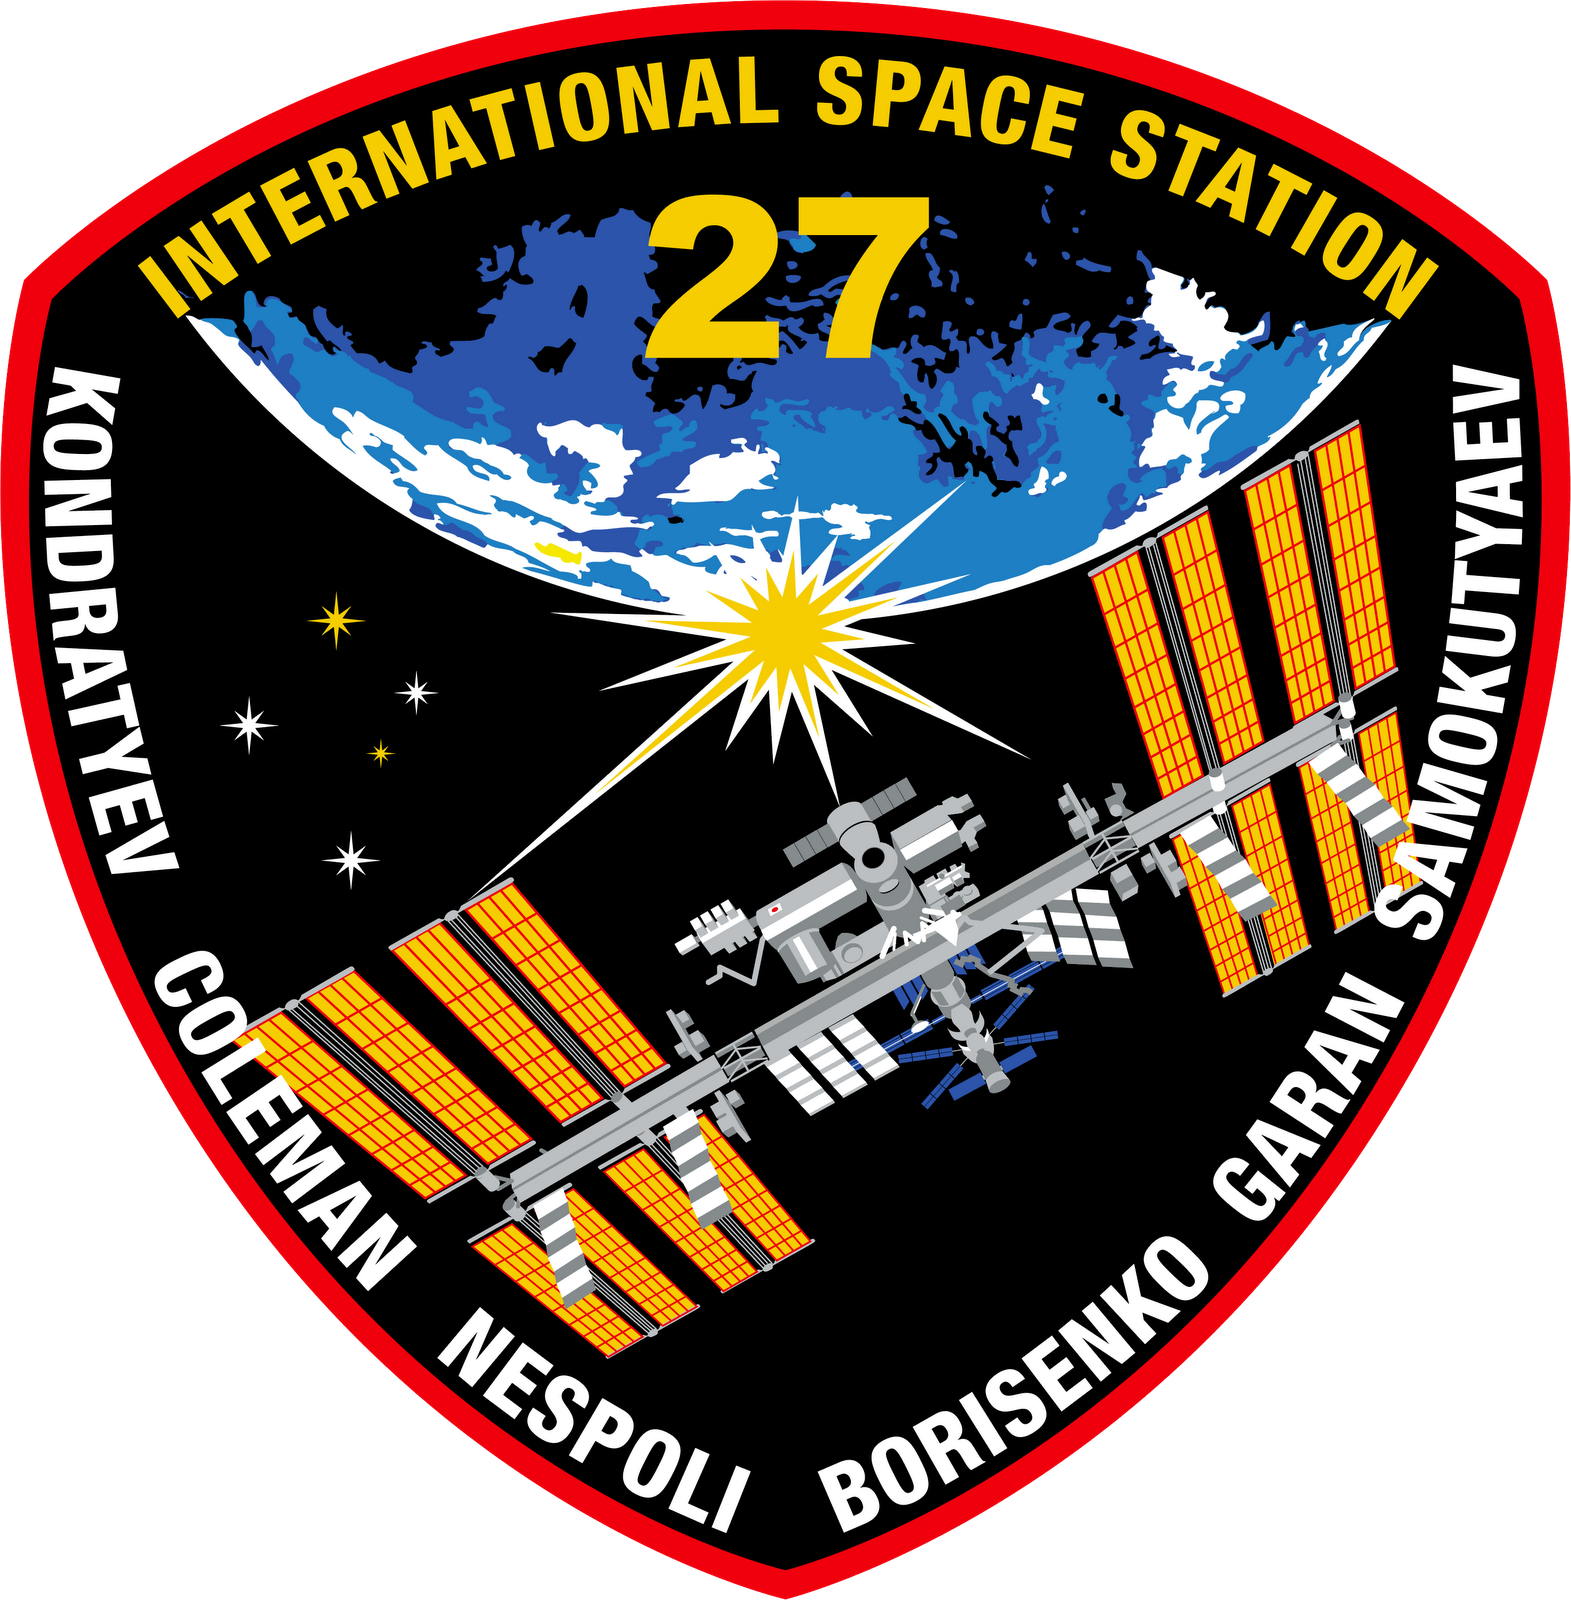 Mission Patches On Mission 4 To The International Space: Orbiter.ch Space News: Expedition 27 Crew Undocks From Station